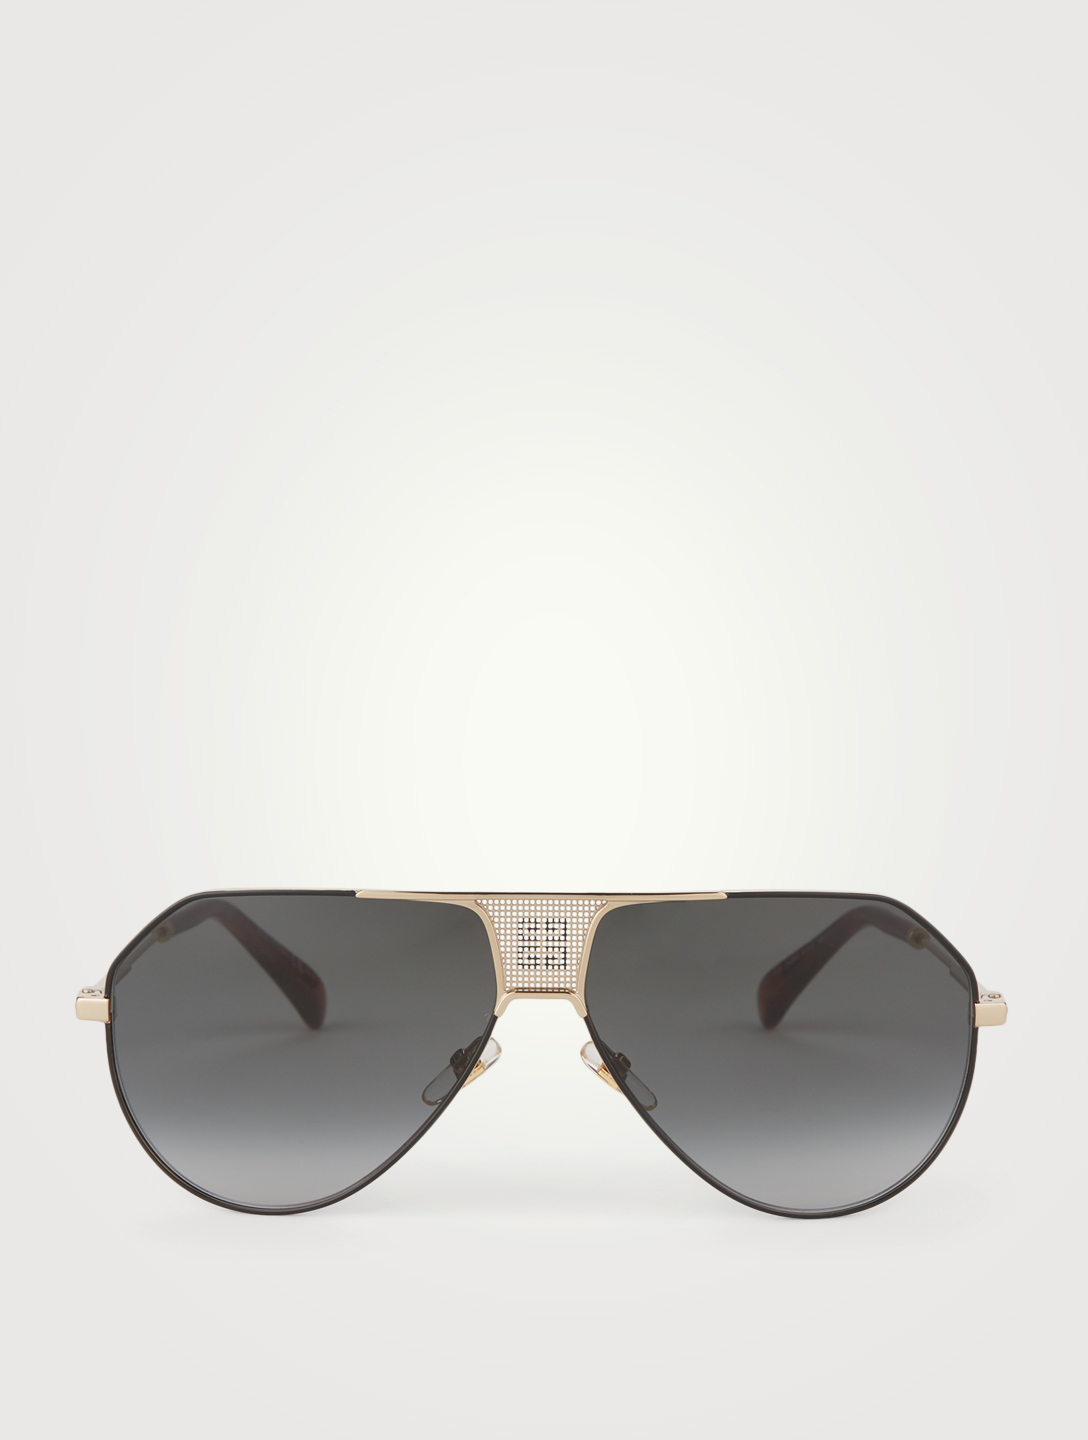 GIVENCHY Aviator Sunglasses Women's Metallic